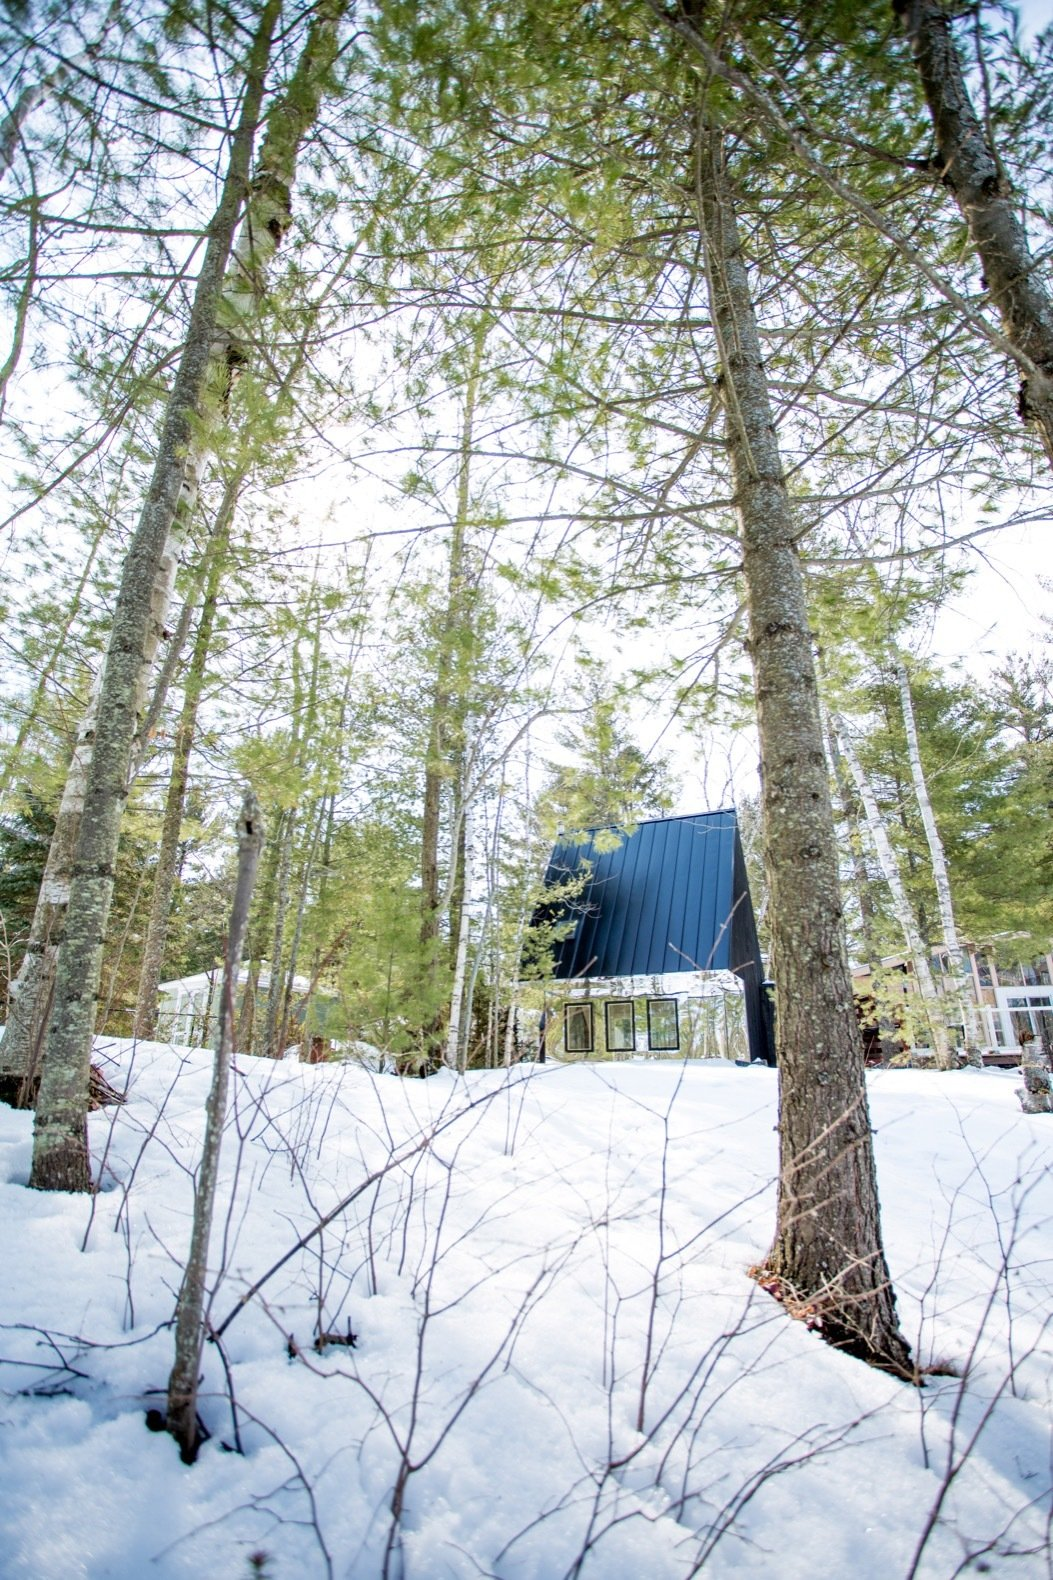 Exterior, Gable RoofLine, Metal Roof Material, Wood Siding Material, and Cabin Building Type The cabin is surrounded by a thick forest of birch and spruce.